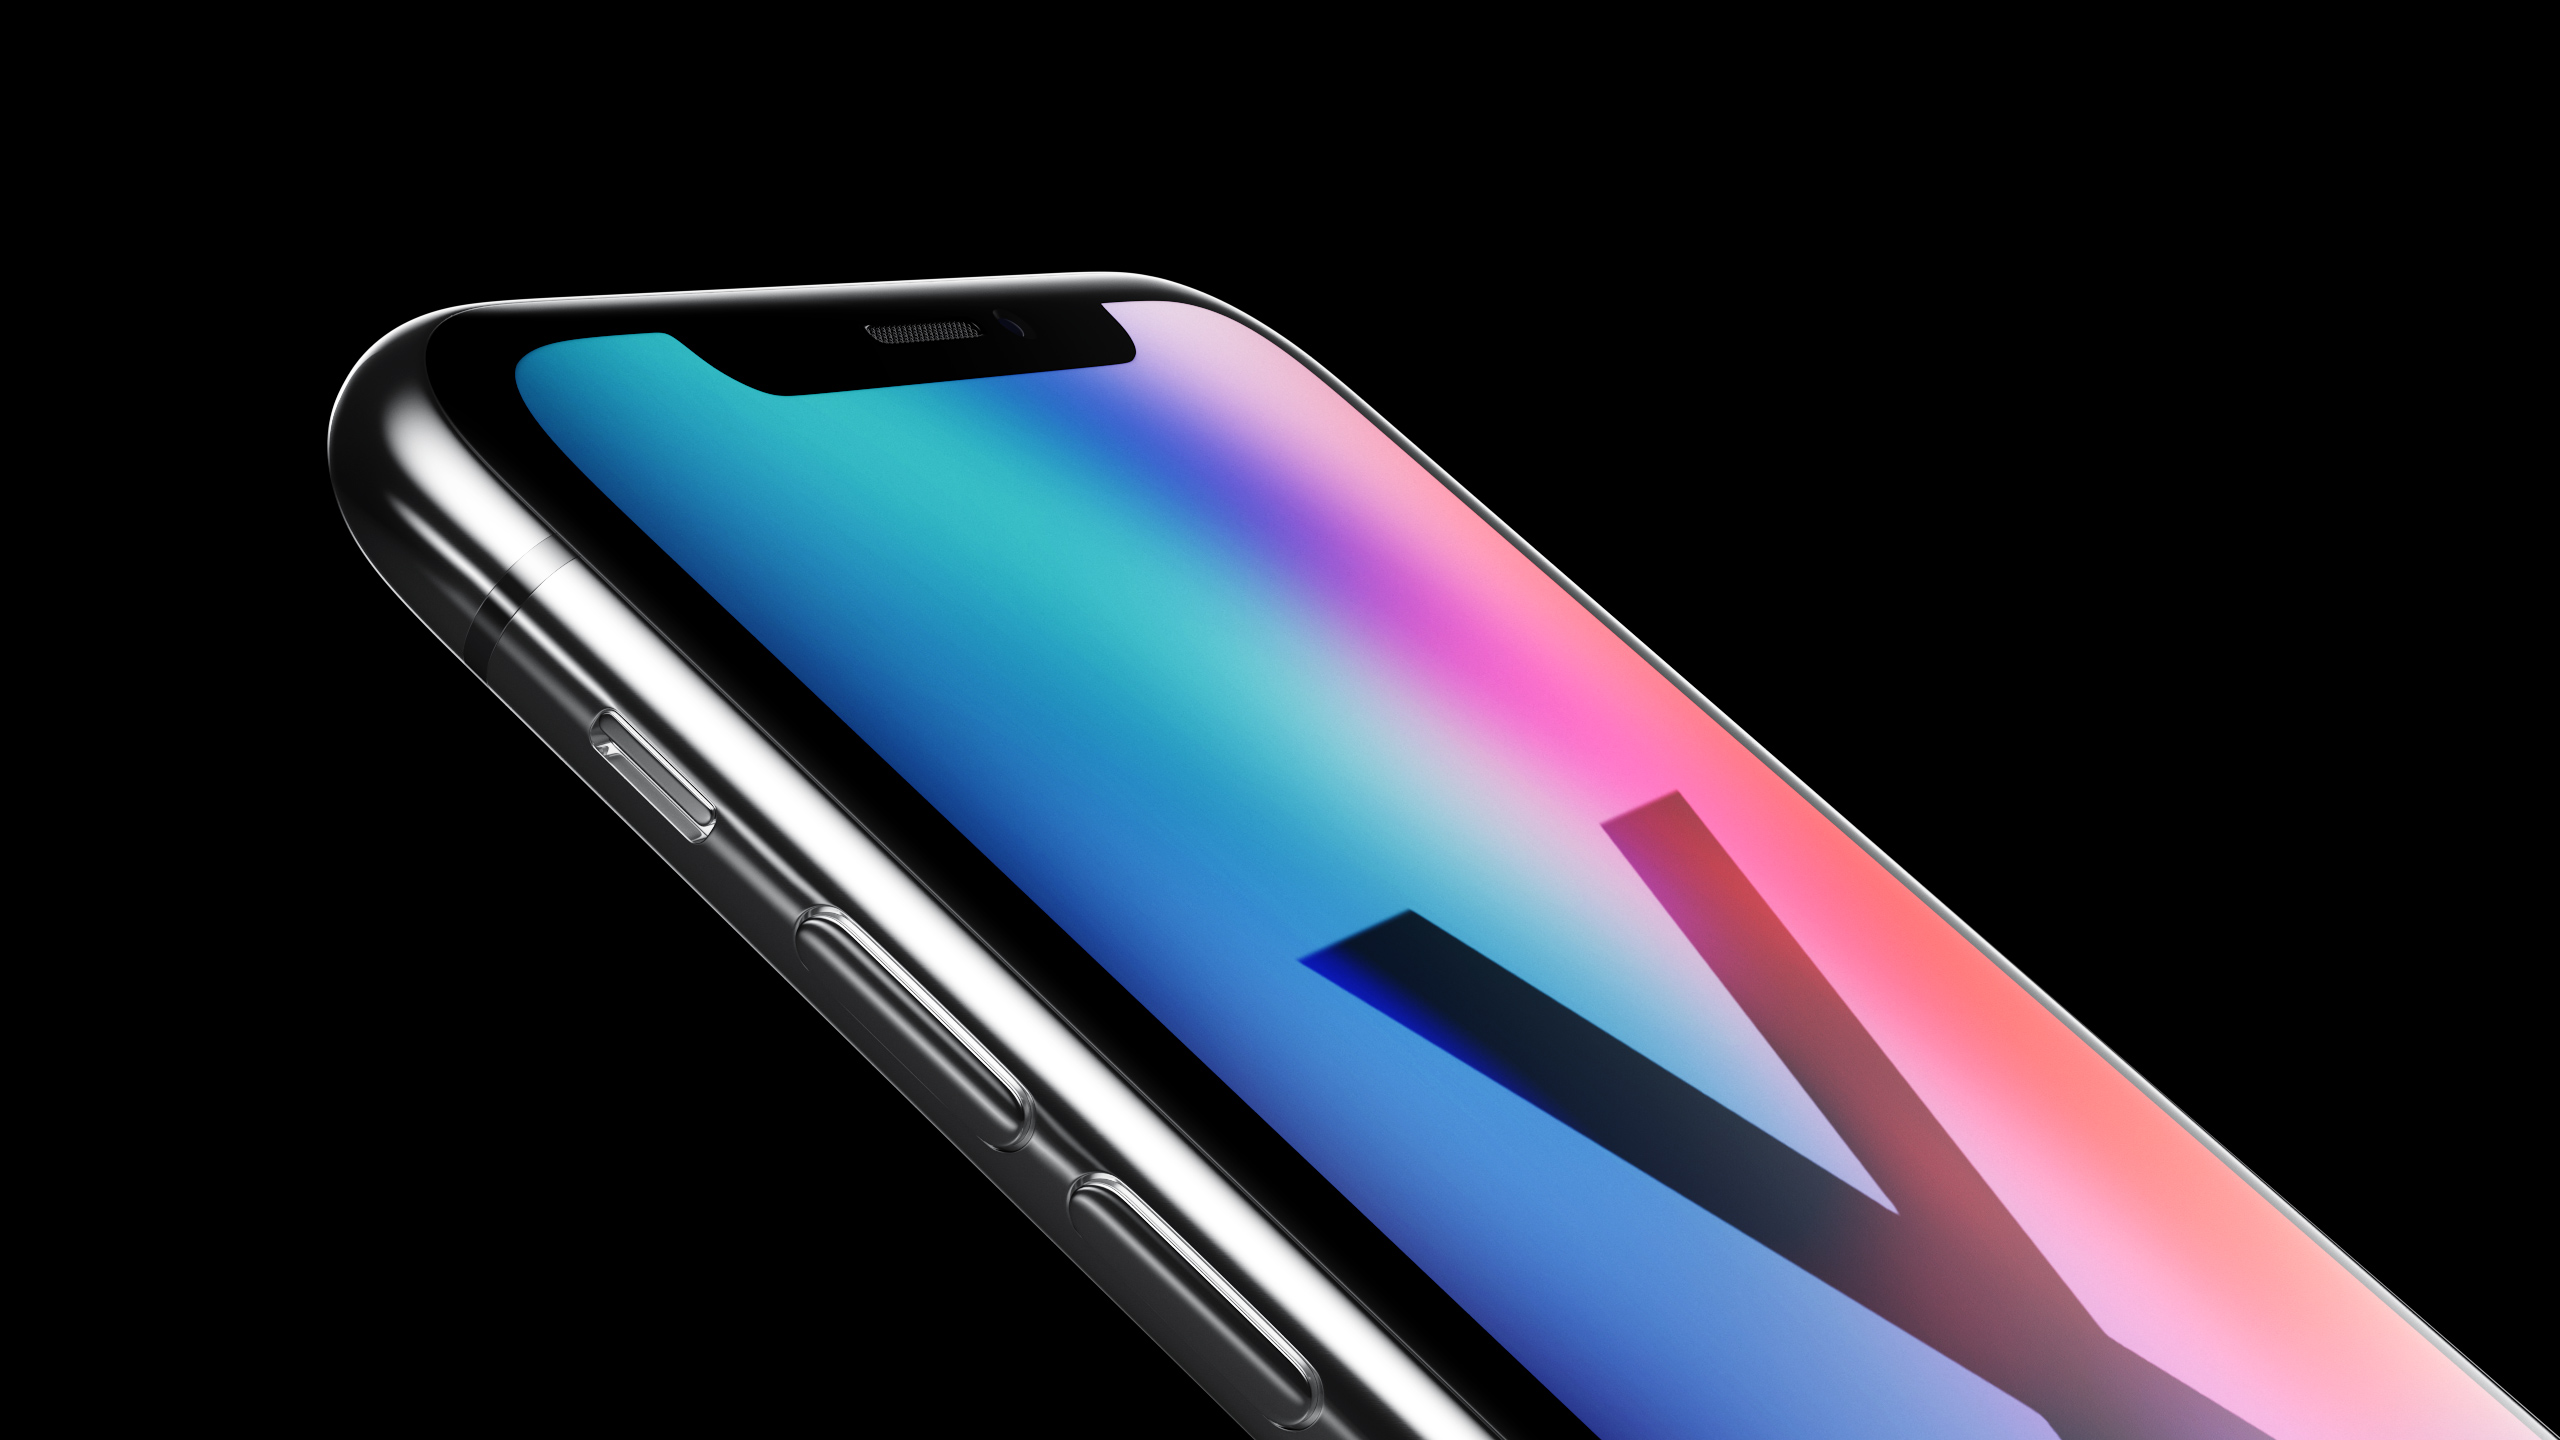 iphone x iphone 10 hd wallpapers | hd wallpapers